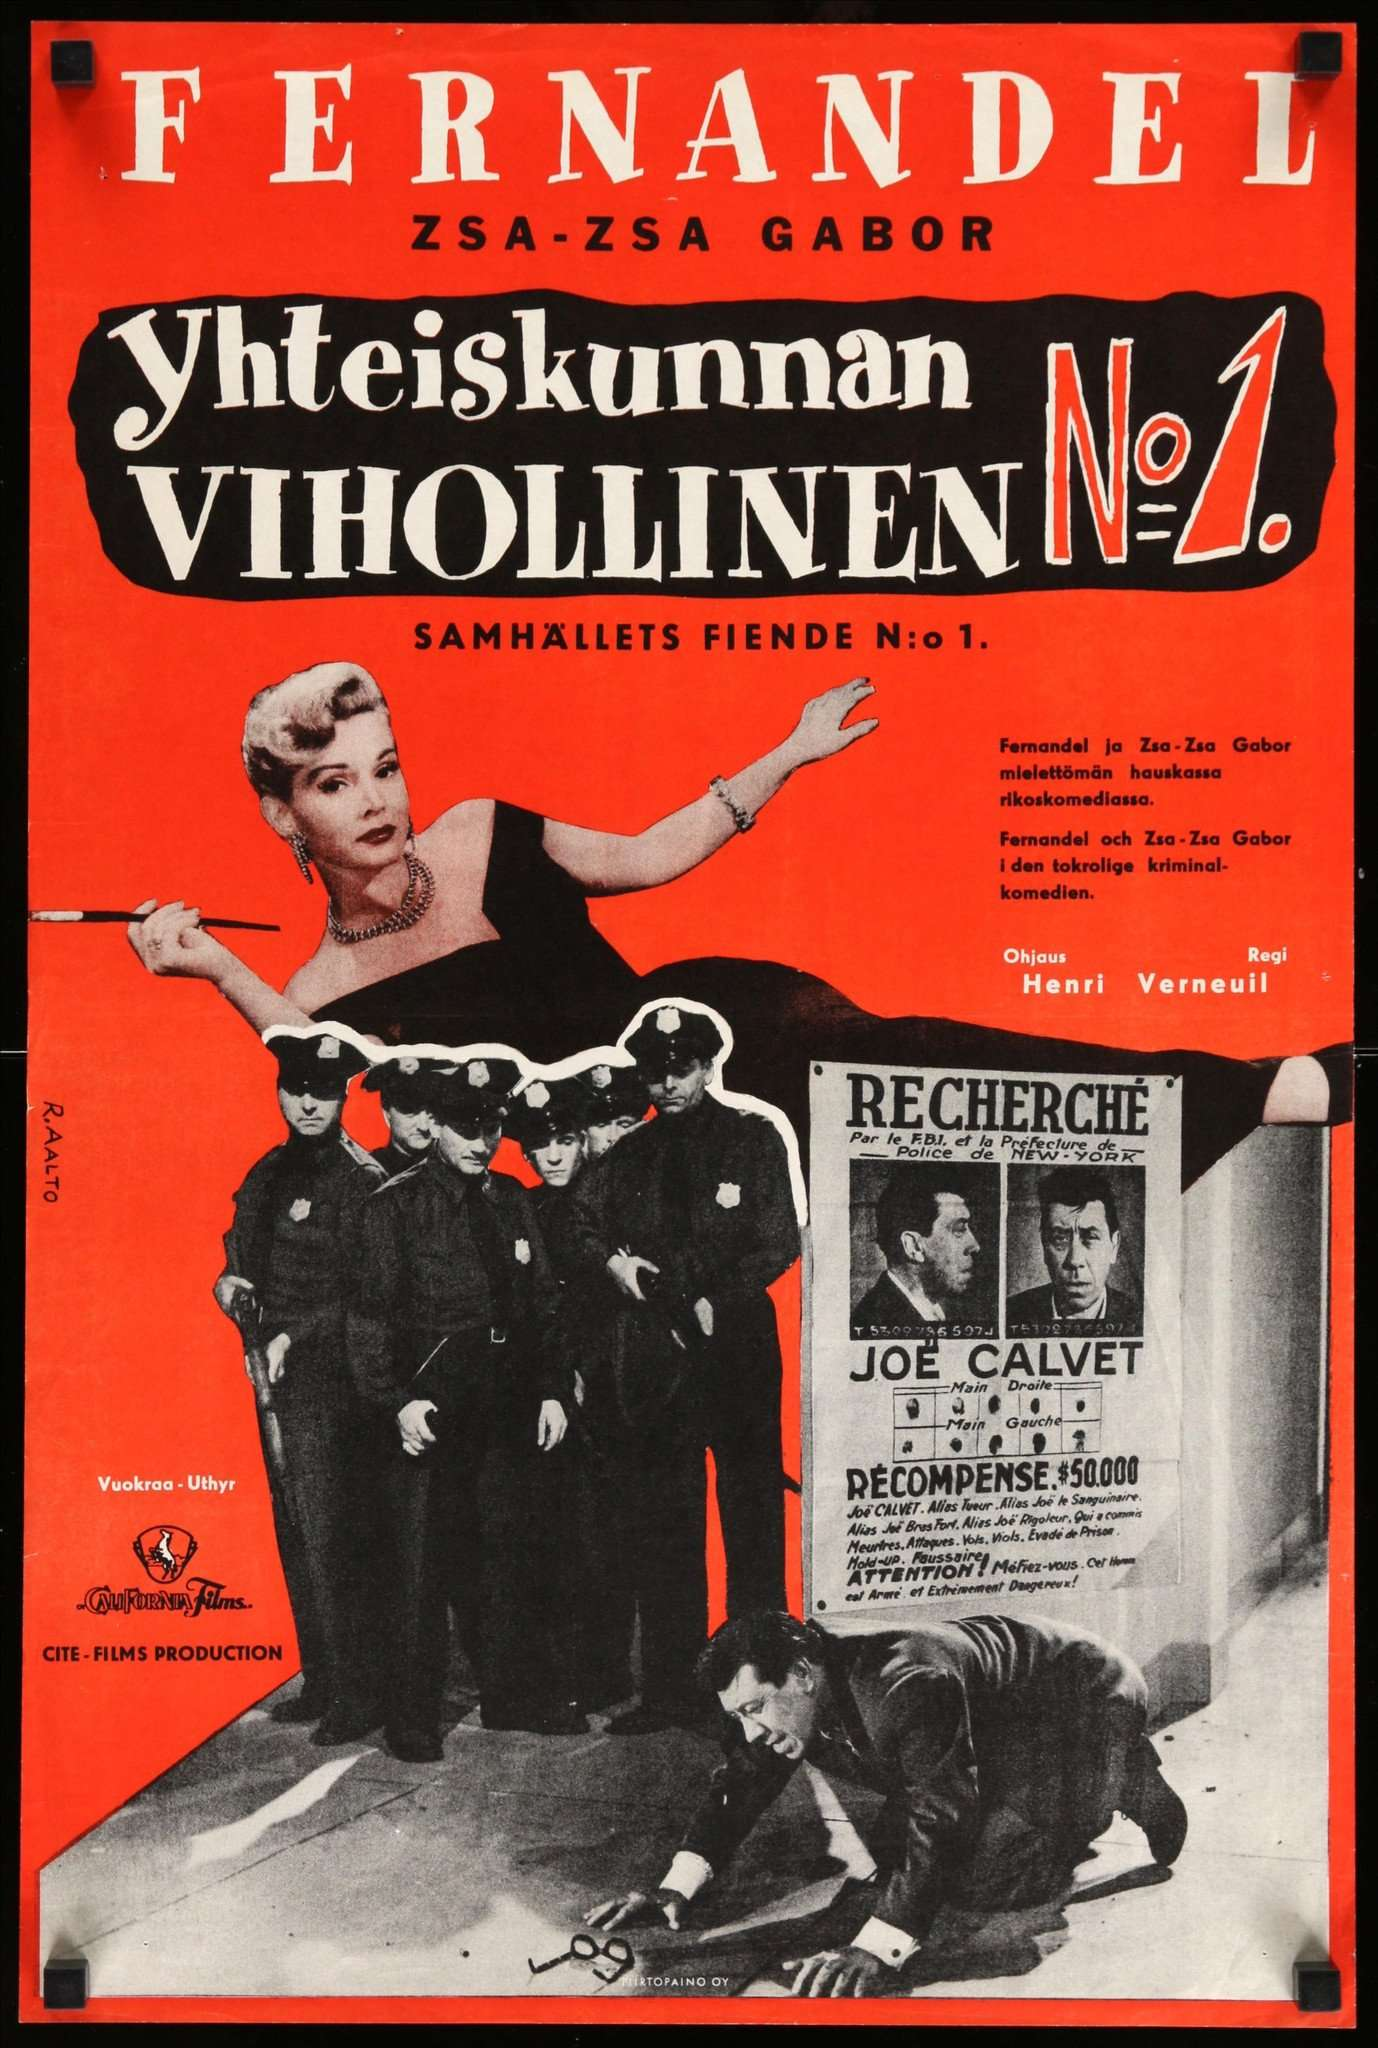 The Most Wanted Man 1953 Original Finnish Movie Poster Original Film Art Vintage Movie Posters